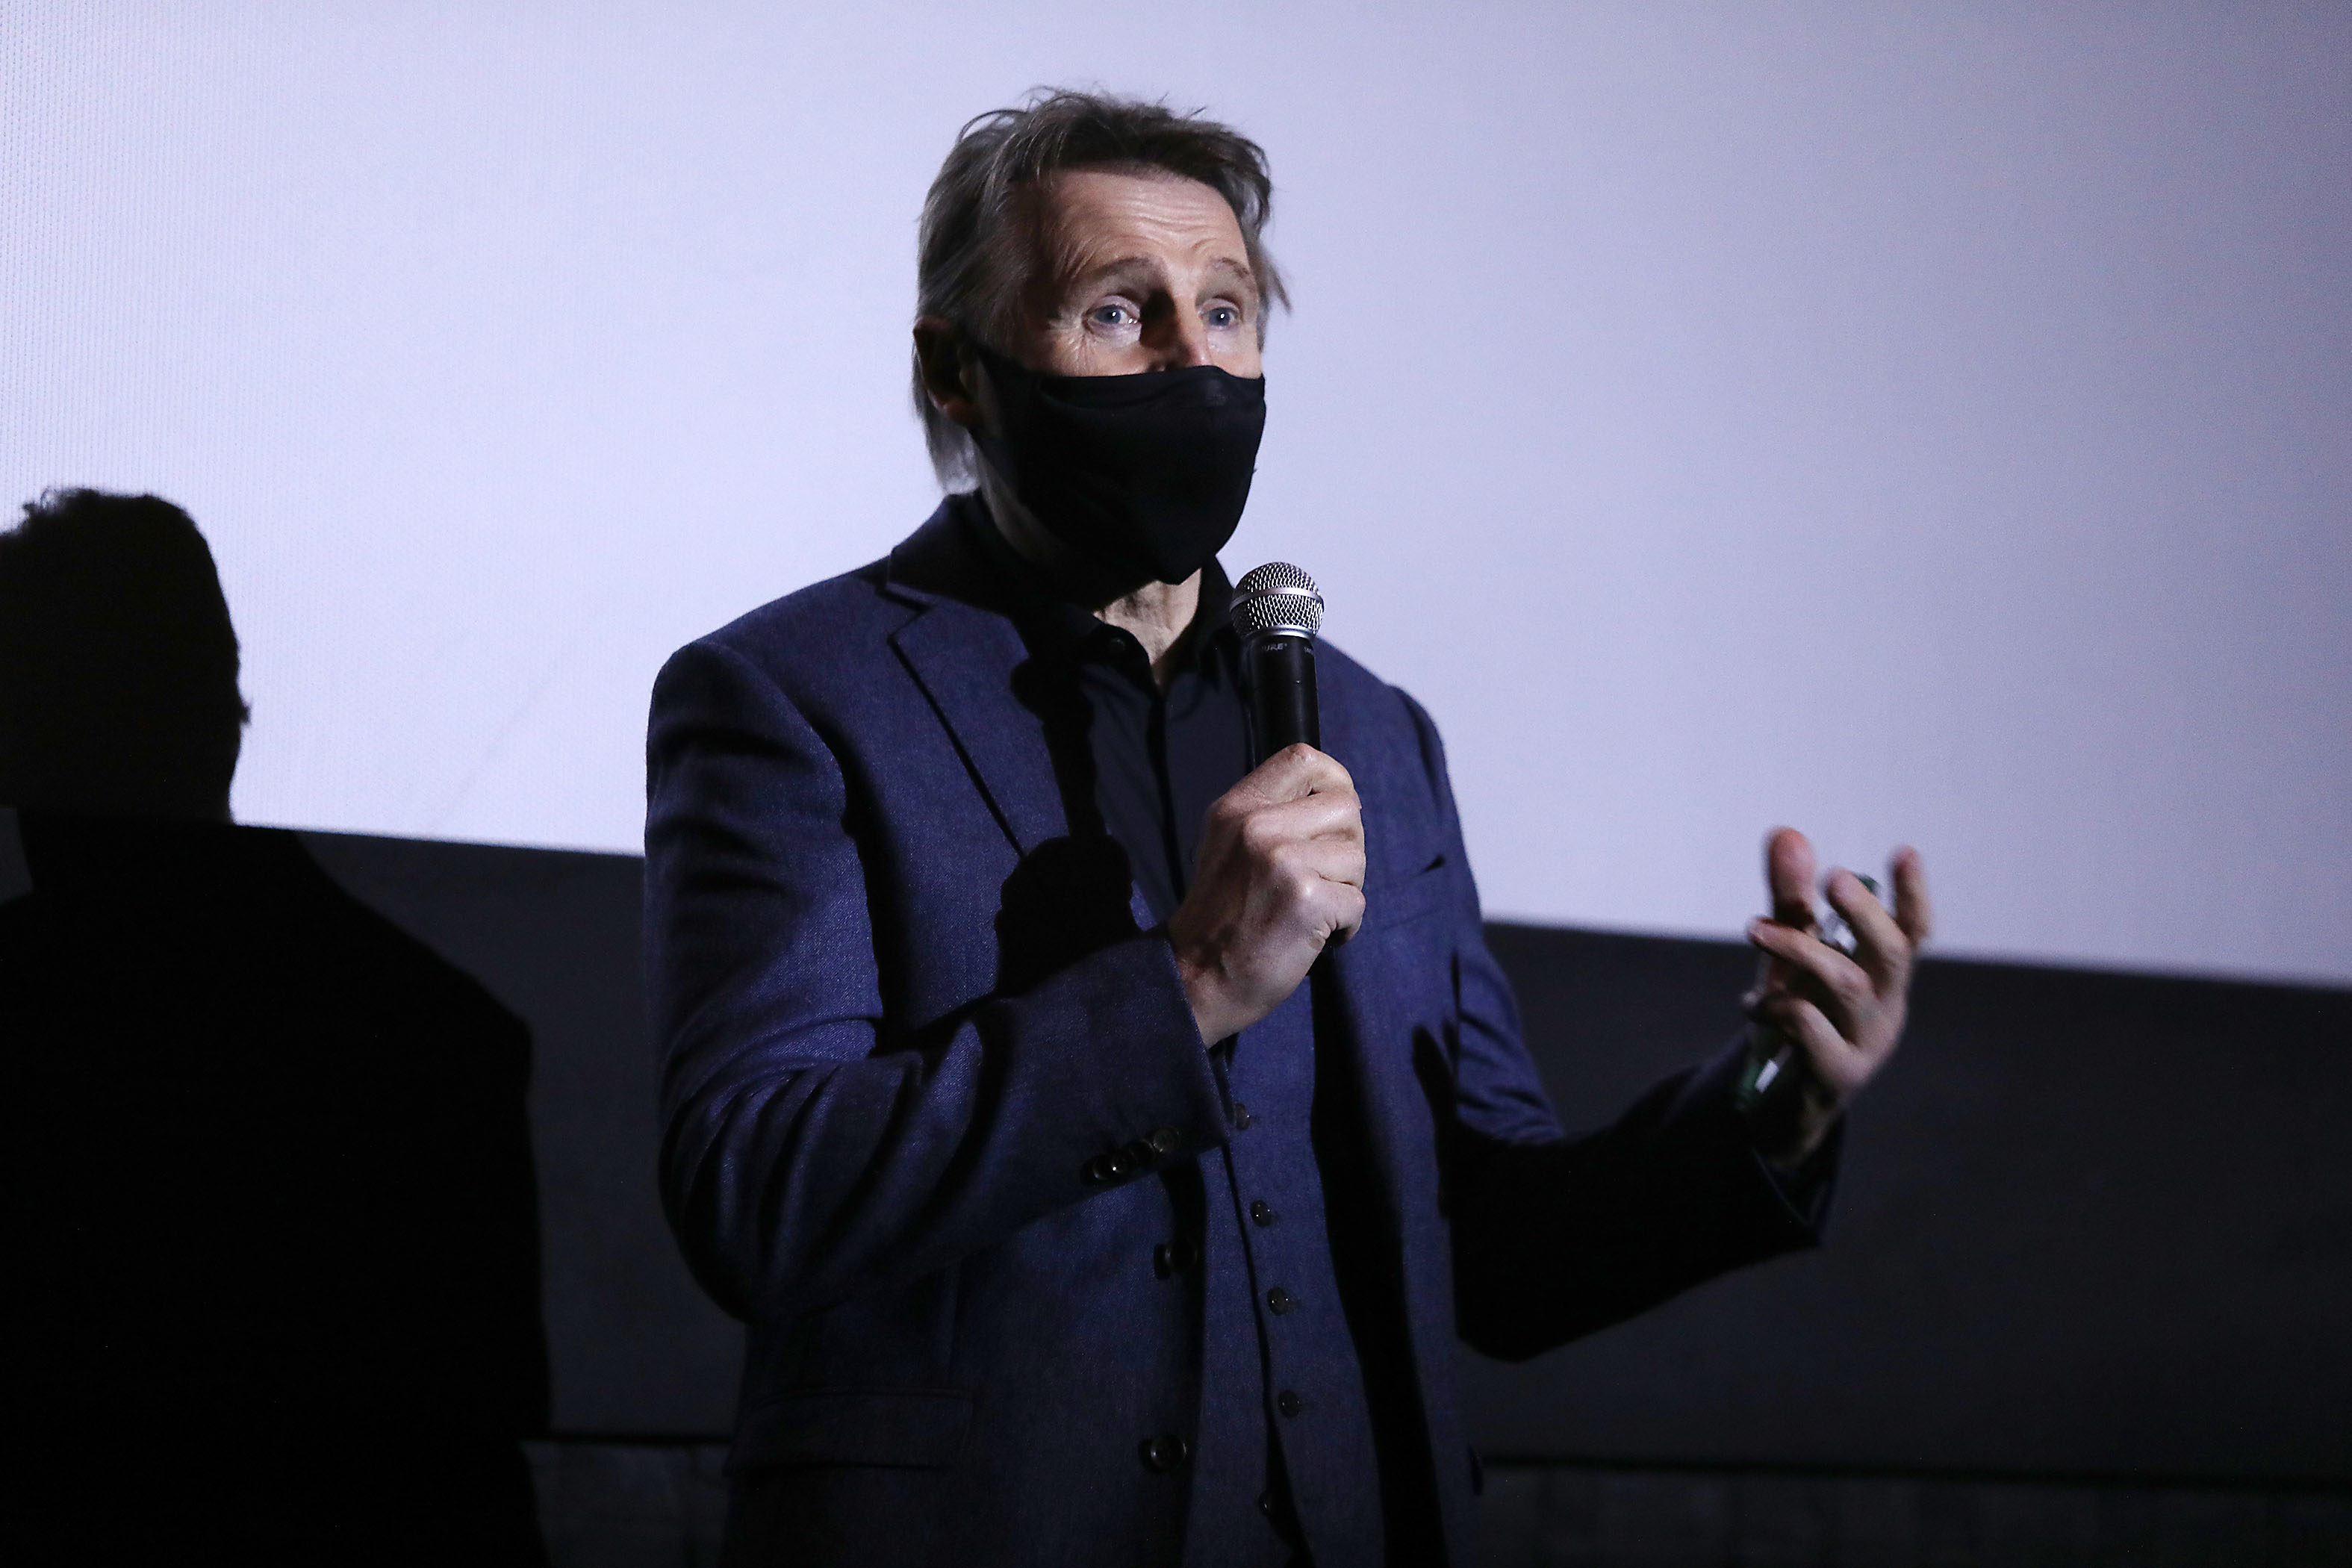 Liam Neeson Thanks Fans Of 'The Marksman' At Appearance For NY Theatrical Release